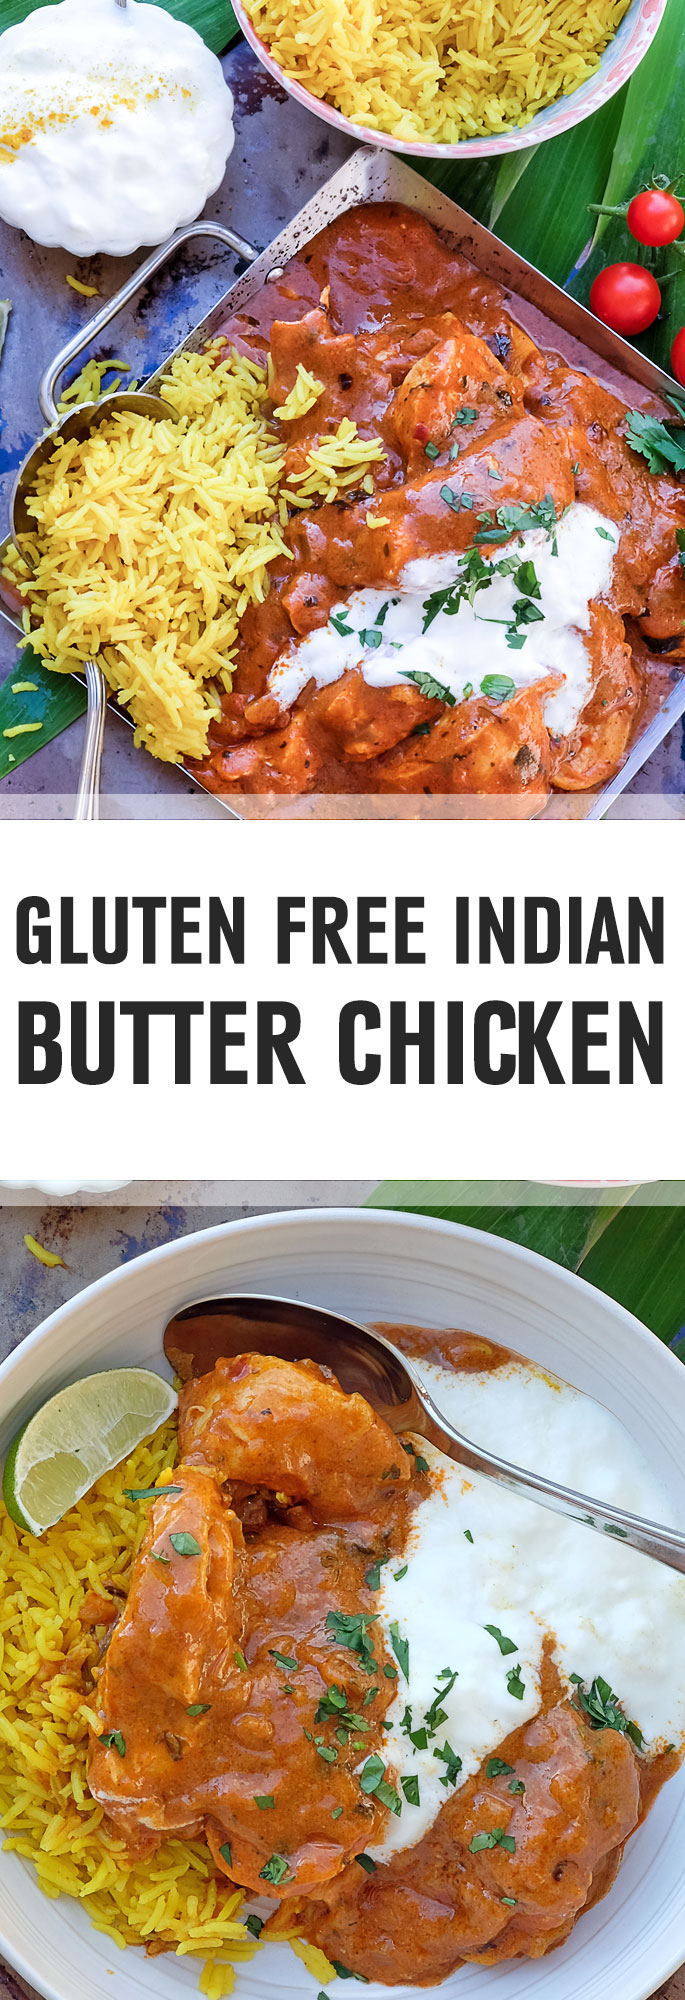 This authentic Indian dish is made with the right spices but without the extra fats that traditional butter chicken would be made with, such as butter or ghee. Just serve with basmati rice. Shared via http://www.gluteninsight.com